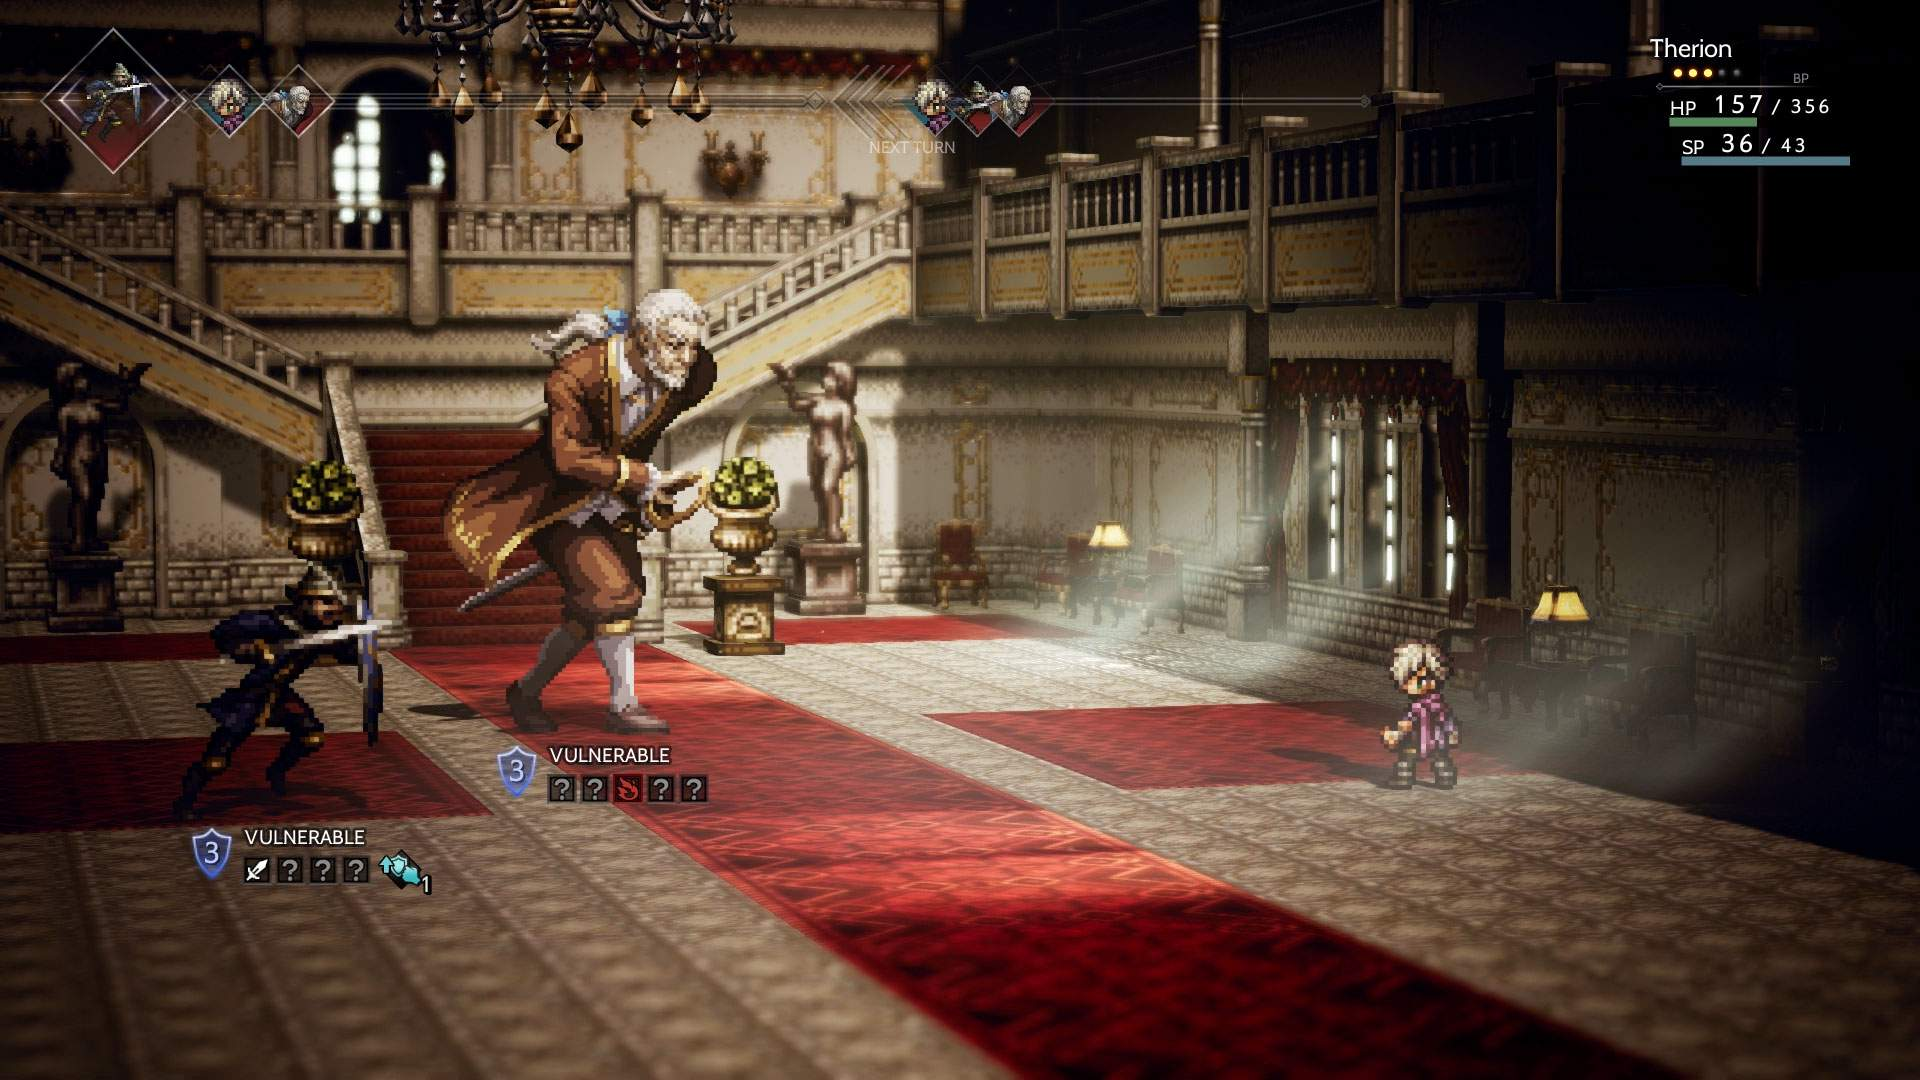 In game battle screenshot showing Therion in turn based battle against two enemies in a large manor